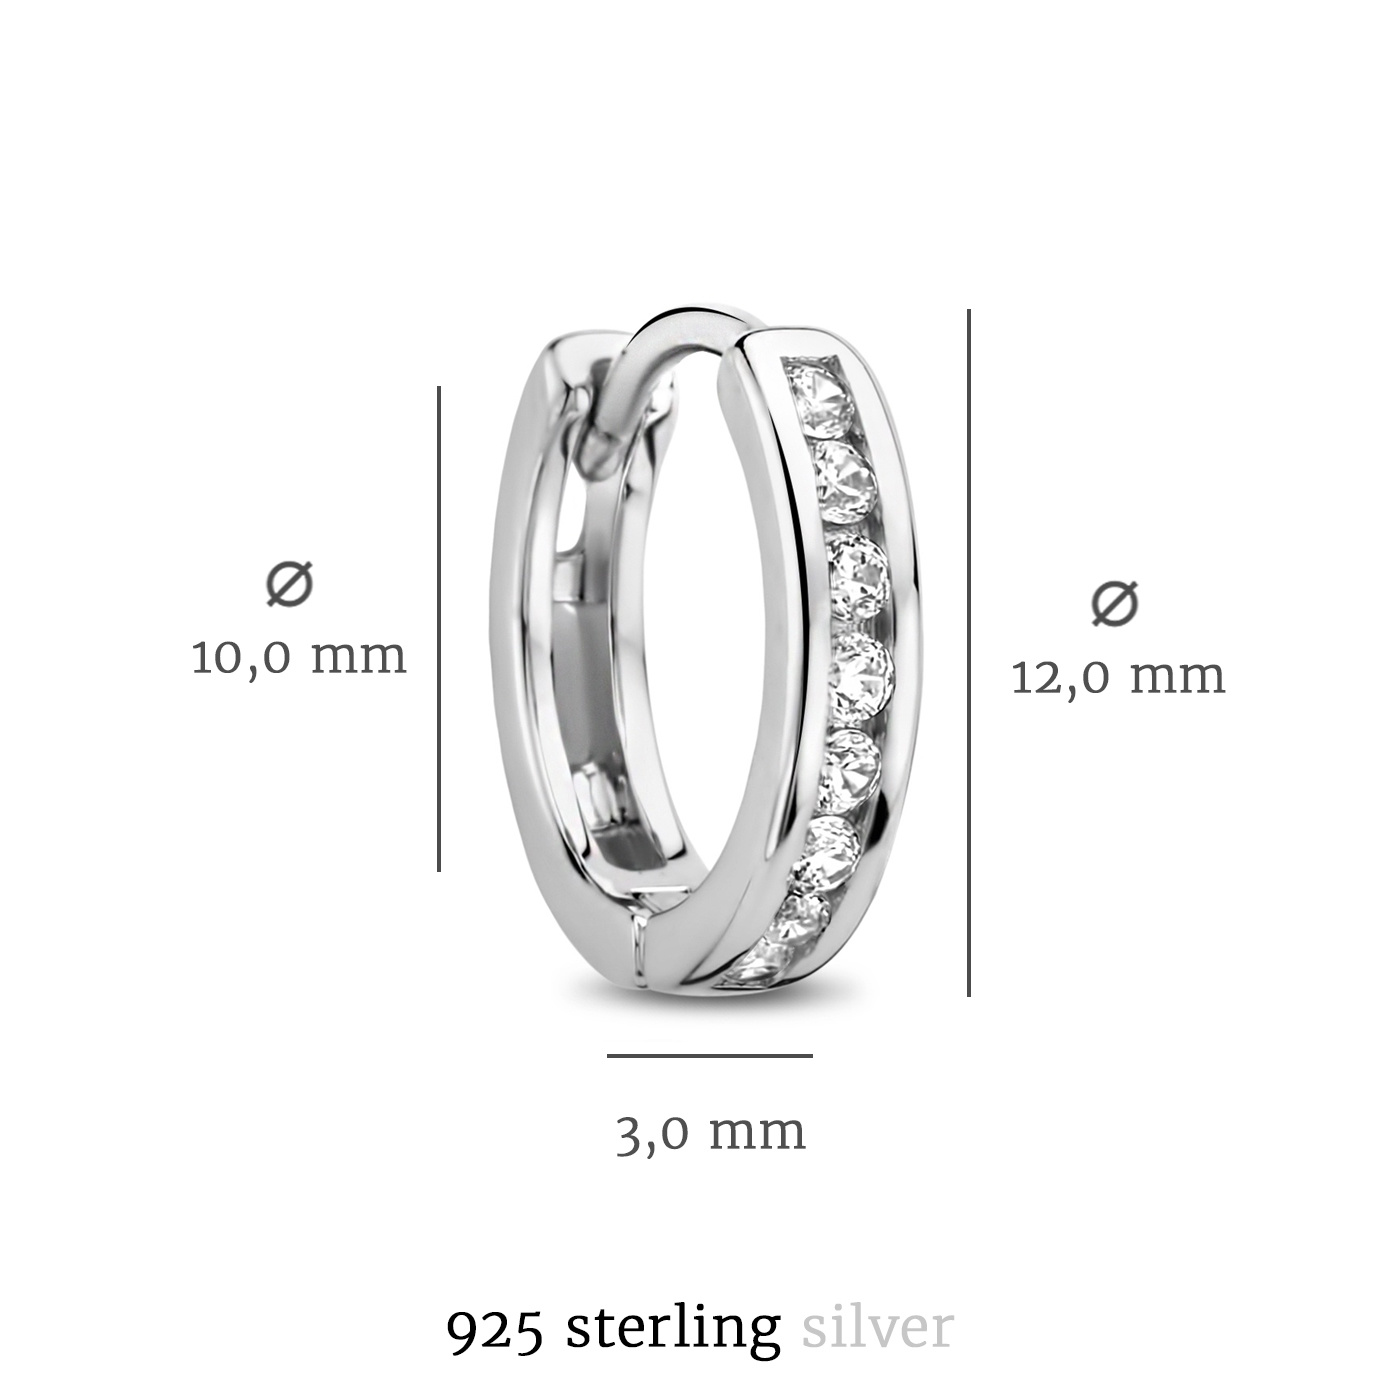 Selected Jewels Mila Elodie 925 sterling silver hoop earrings with zirconia